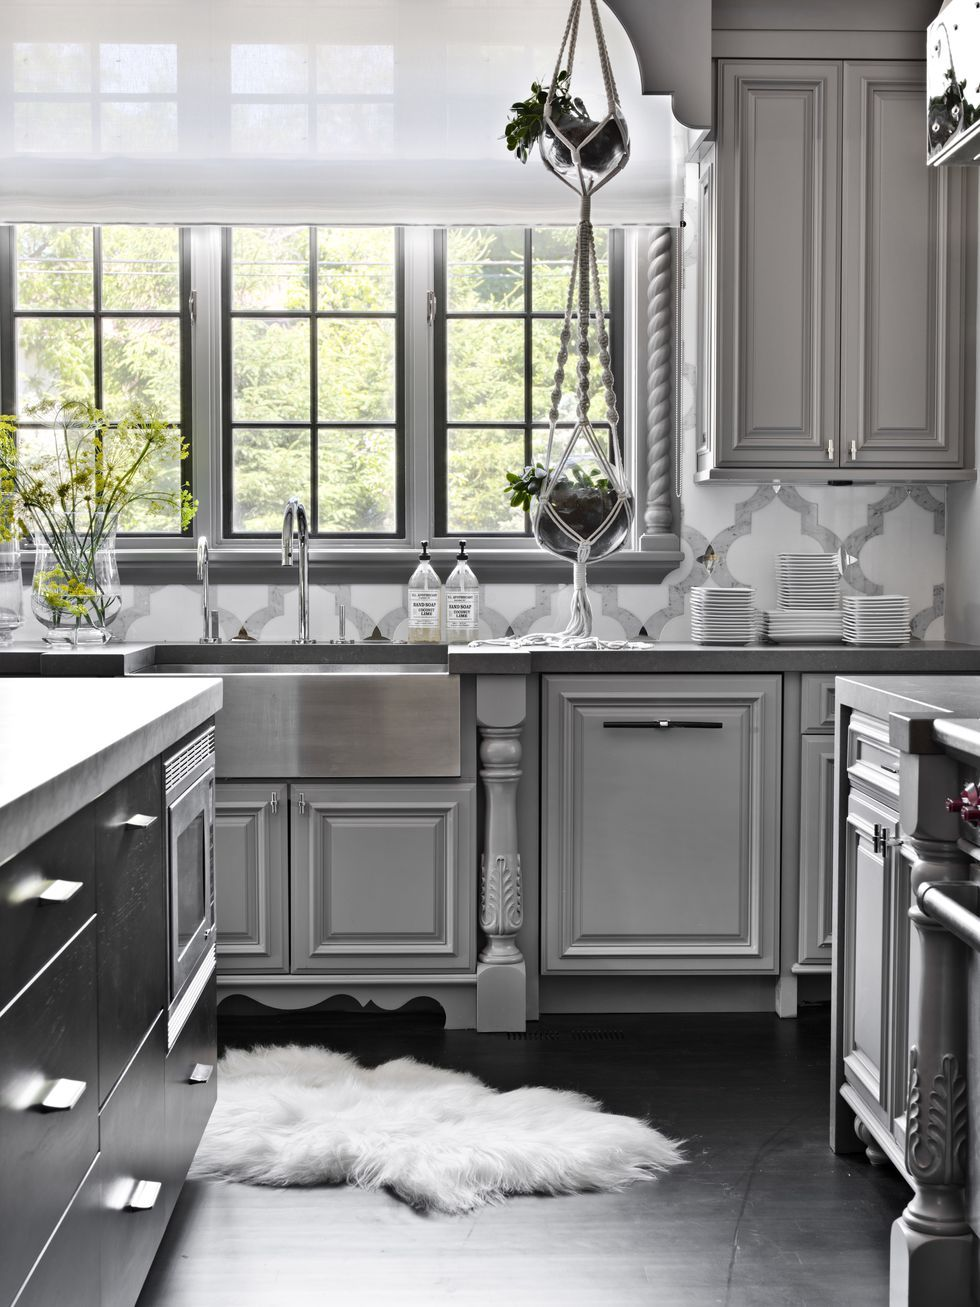 grey kitchen cabinets & 14 Best Grey Kitchen Cabinets - Design Ideas with Grey Cabinets